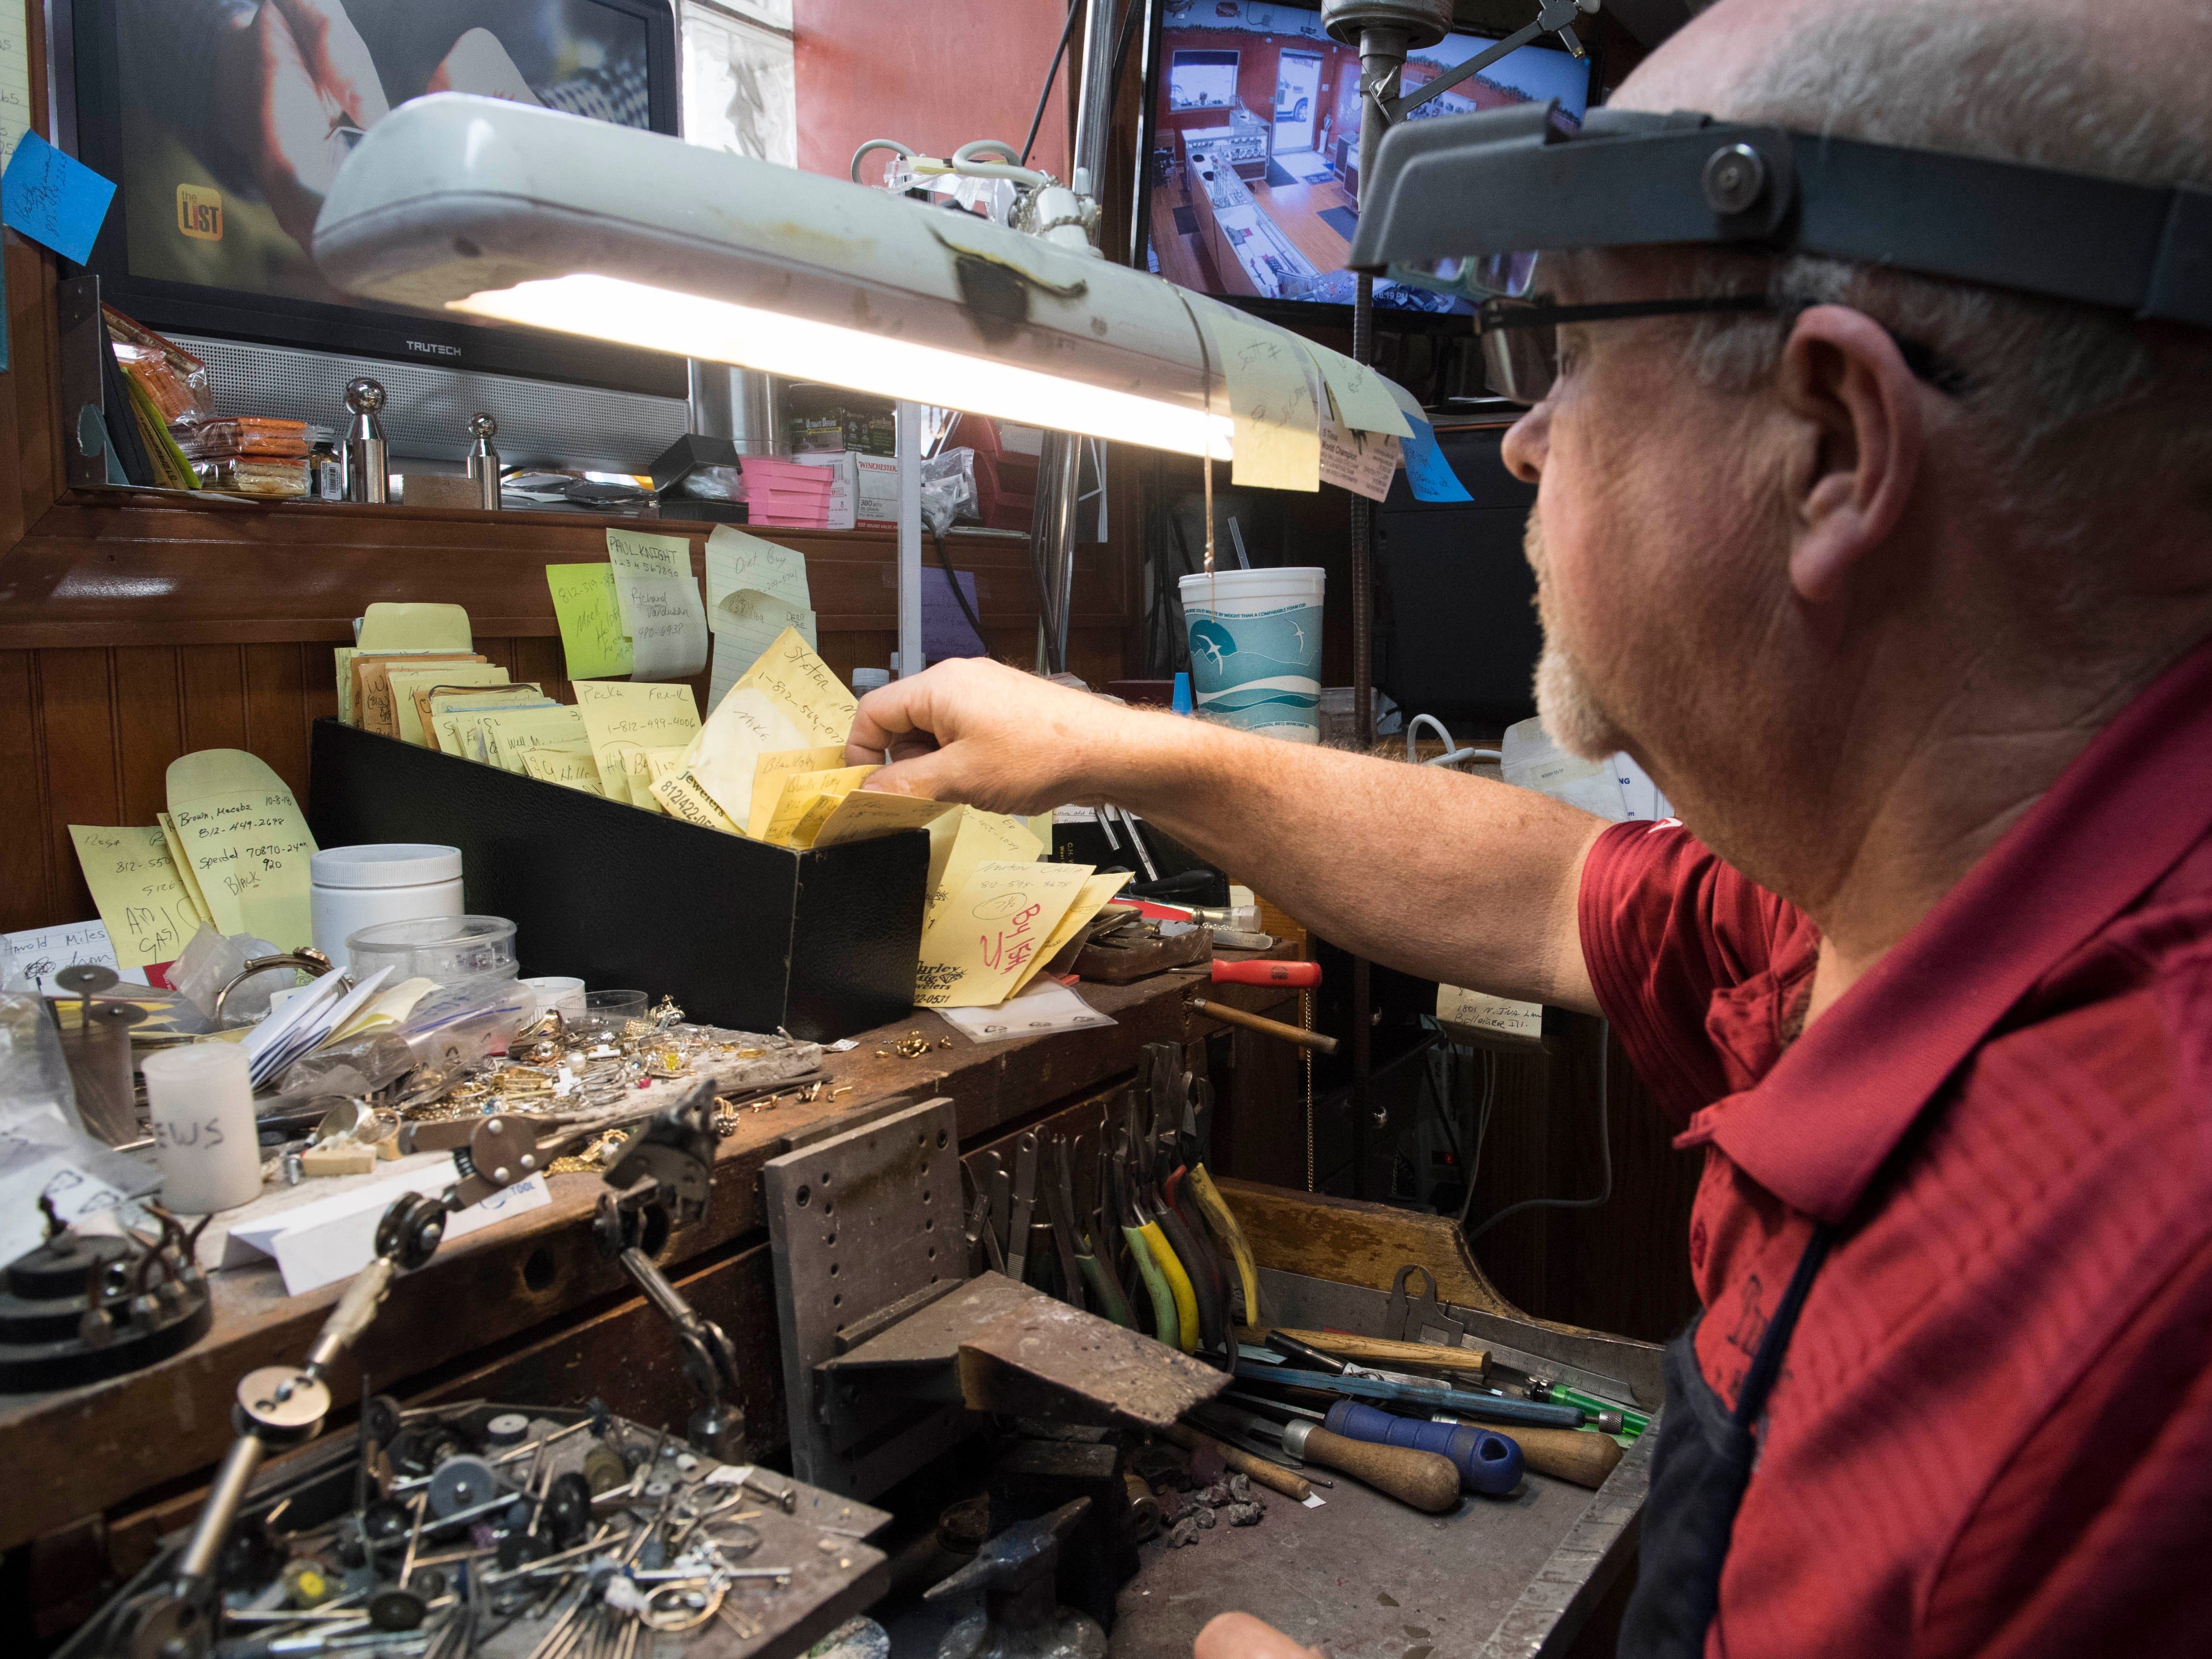 Owner Bryan Turley of Turley Mfg. Jewelers grabs a small envelope with jewelry to repair at his workbench Wednesday, April 10, 2019. Turley Mfg. Jewelers is a third generation family own jewelry store in its 71st year in Downtown Evansville, Indiana.